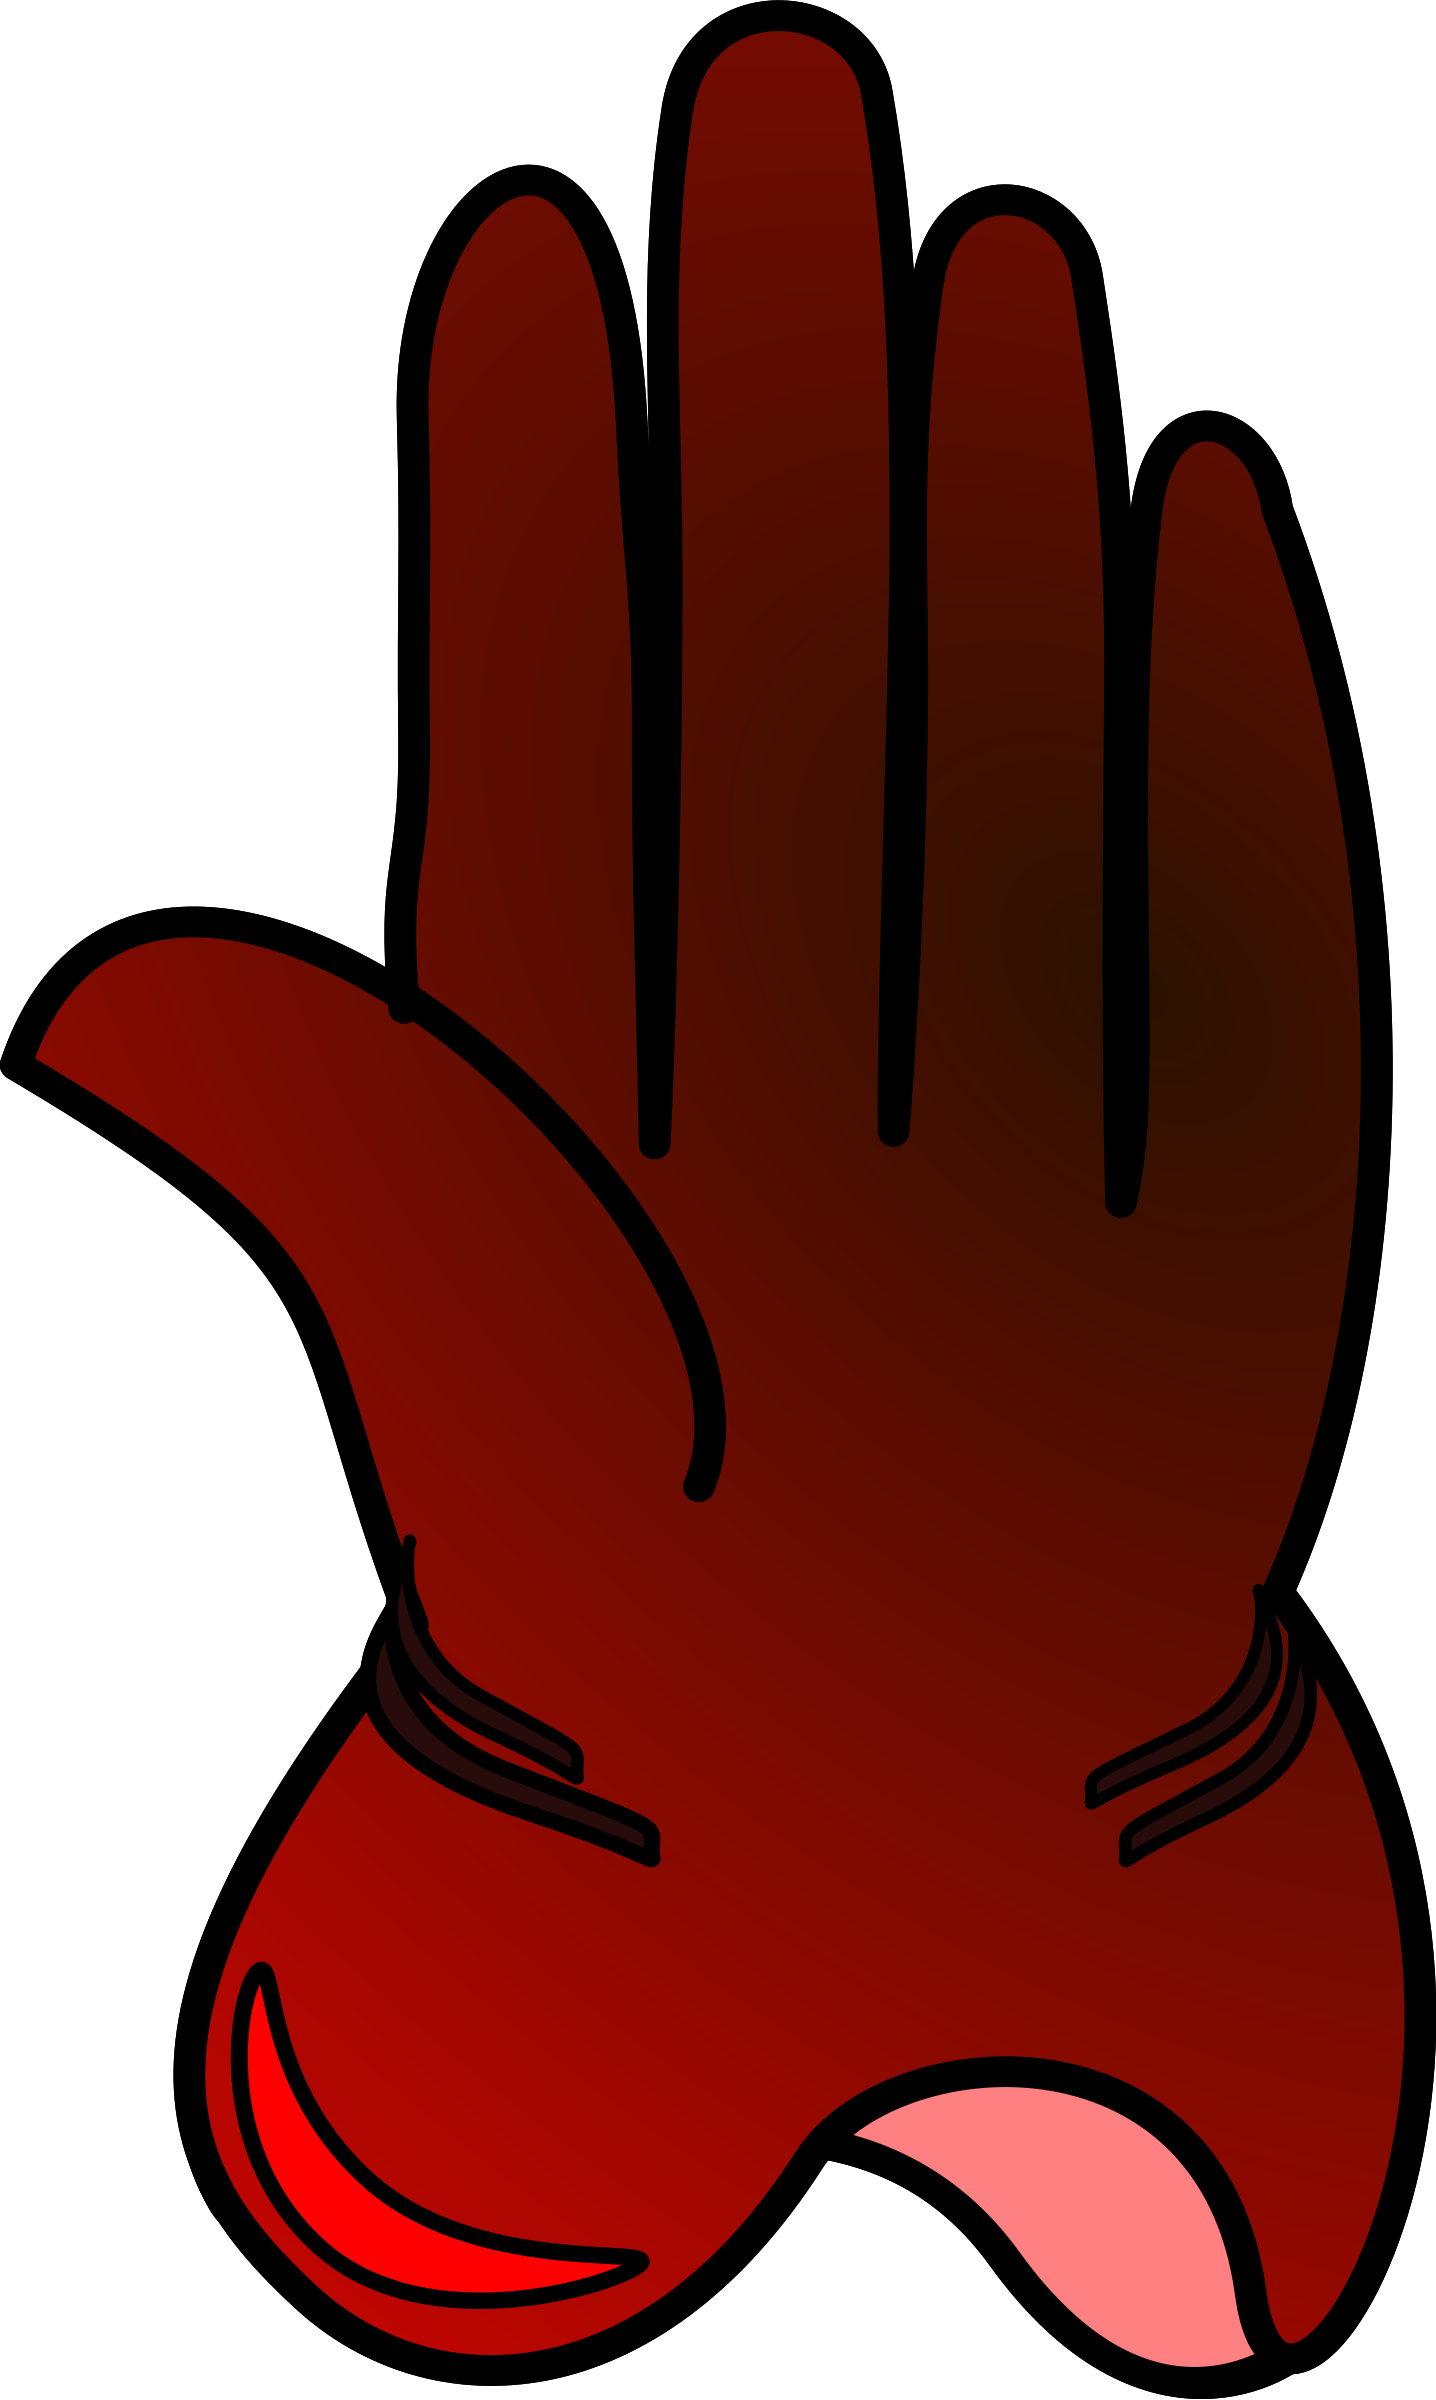 Glove clipart. Big image png